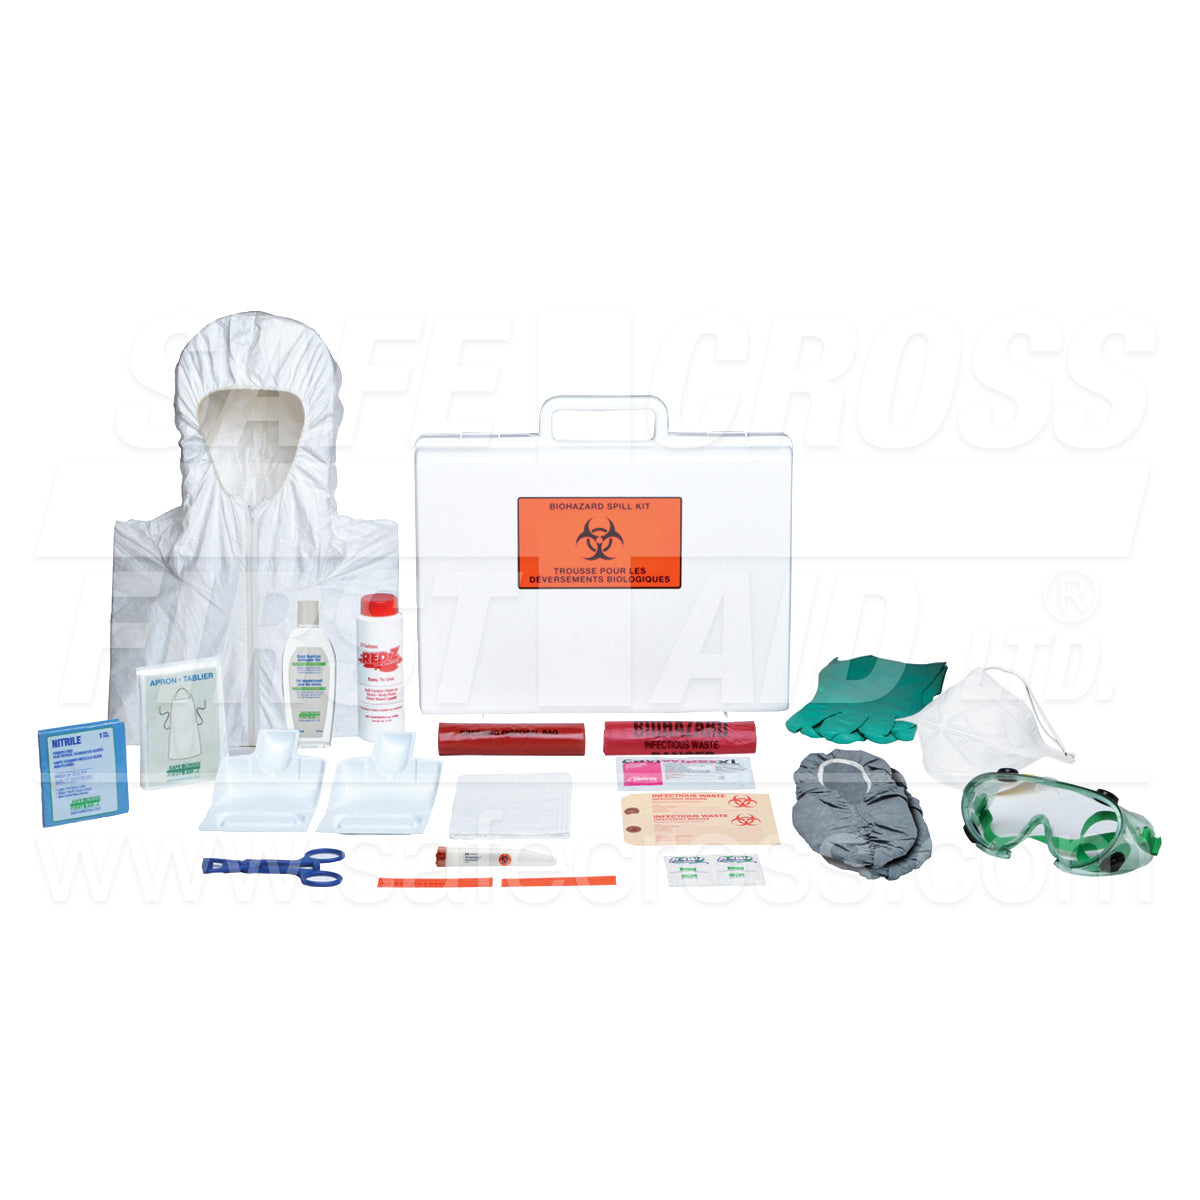 Safecross® Biohazard Mobile Spill Kit